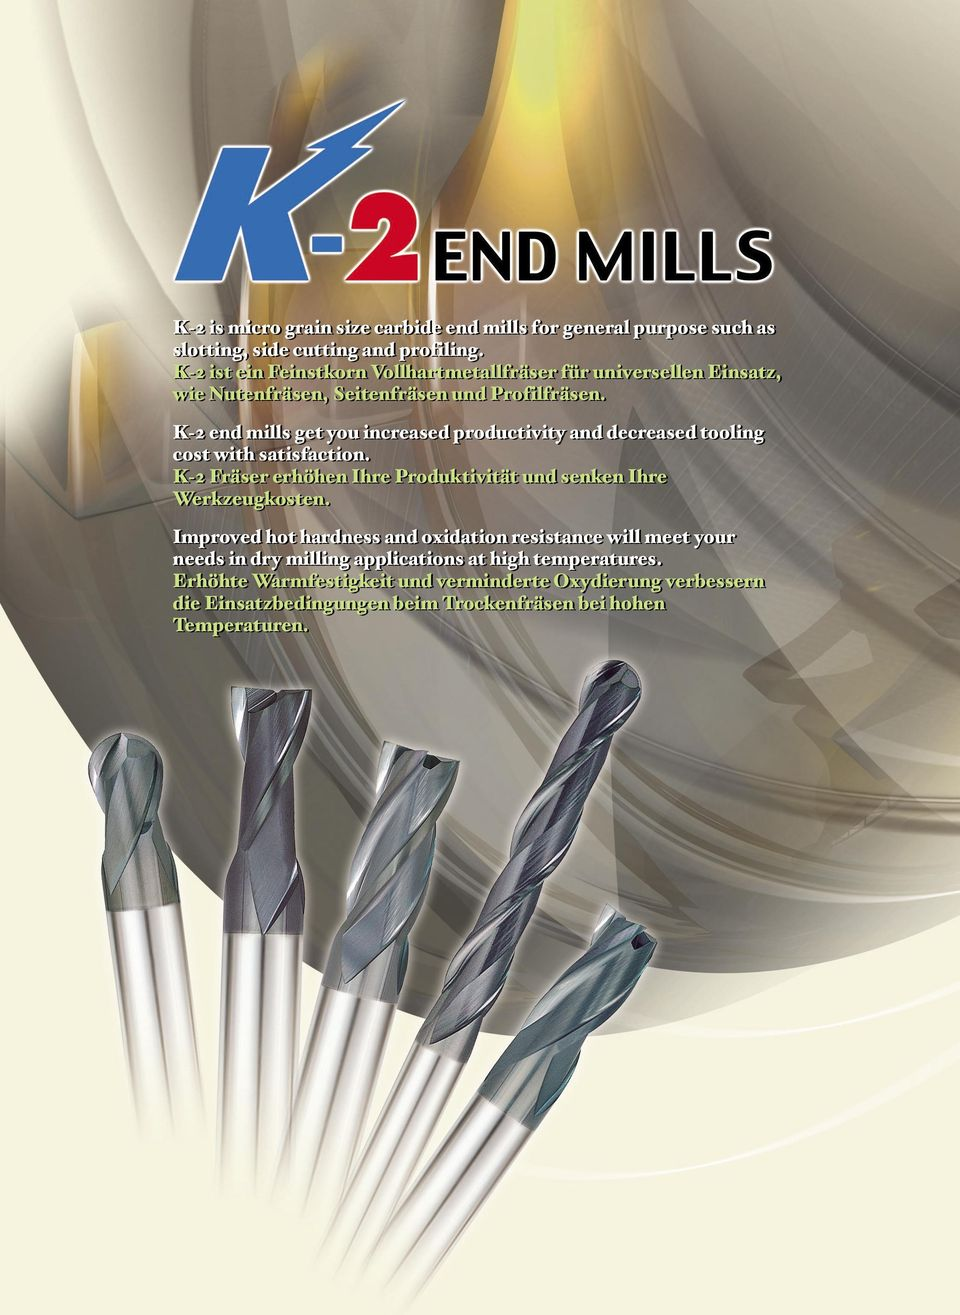 K-2 end mills get you increased productivity and decreased tooling cost with satisfaction.